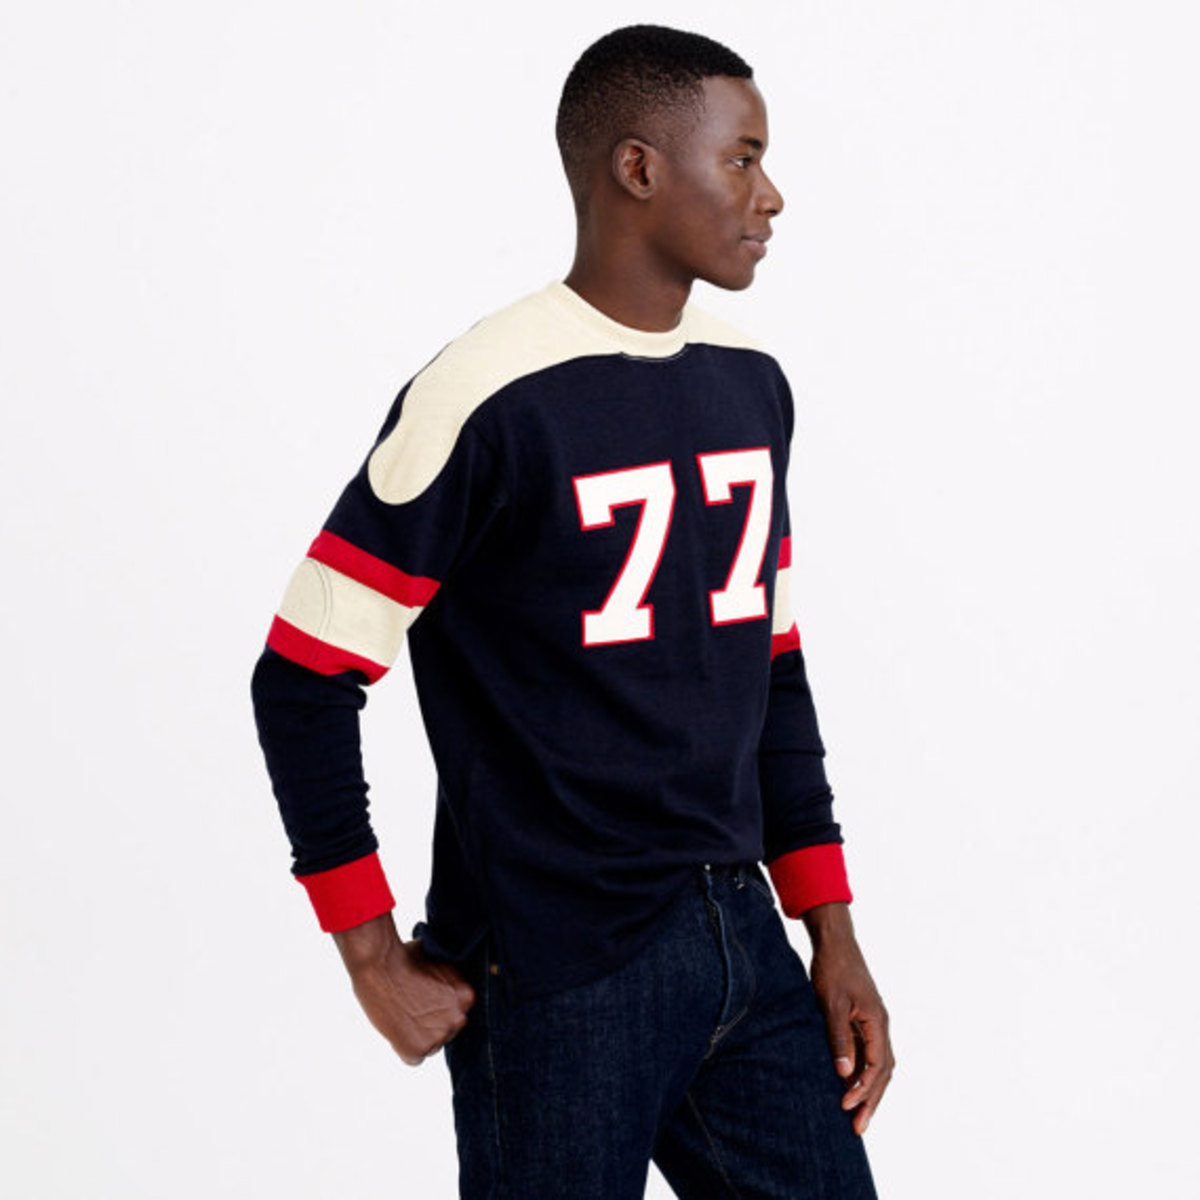 Ebbets Field Flannels Vintage Knit Football Jersey Collection | J.Crew Exclusive - 0